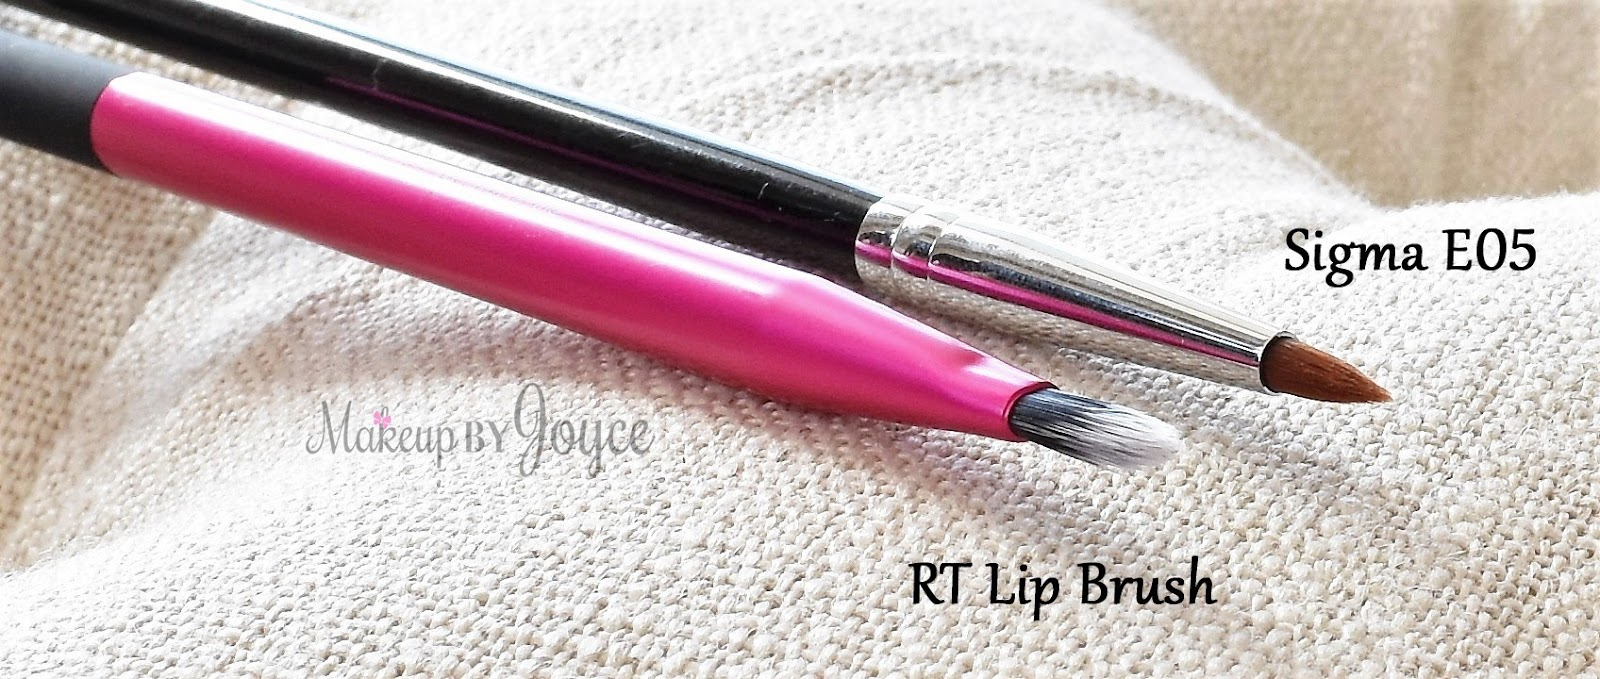 Real Techniques Lip Brush vs Sigma E05 Eyeliner Review